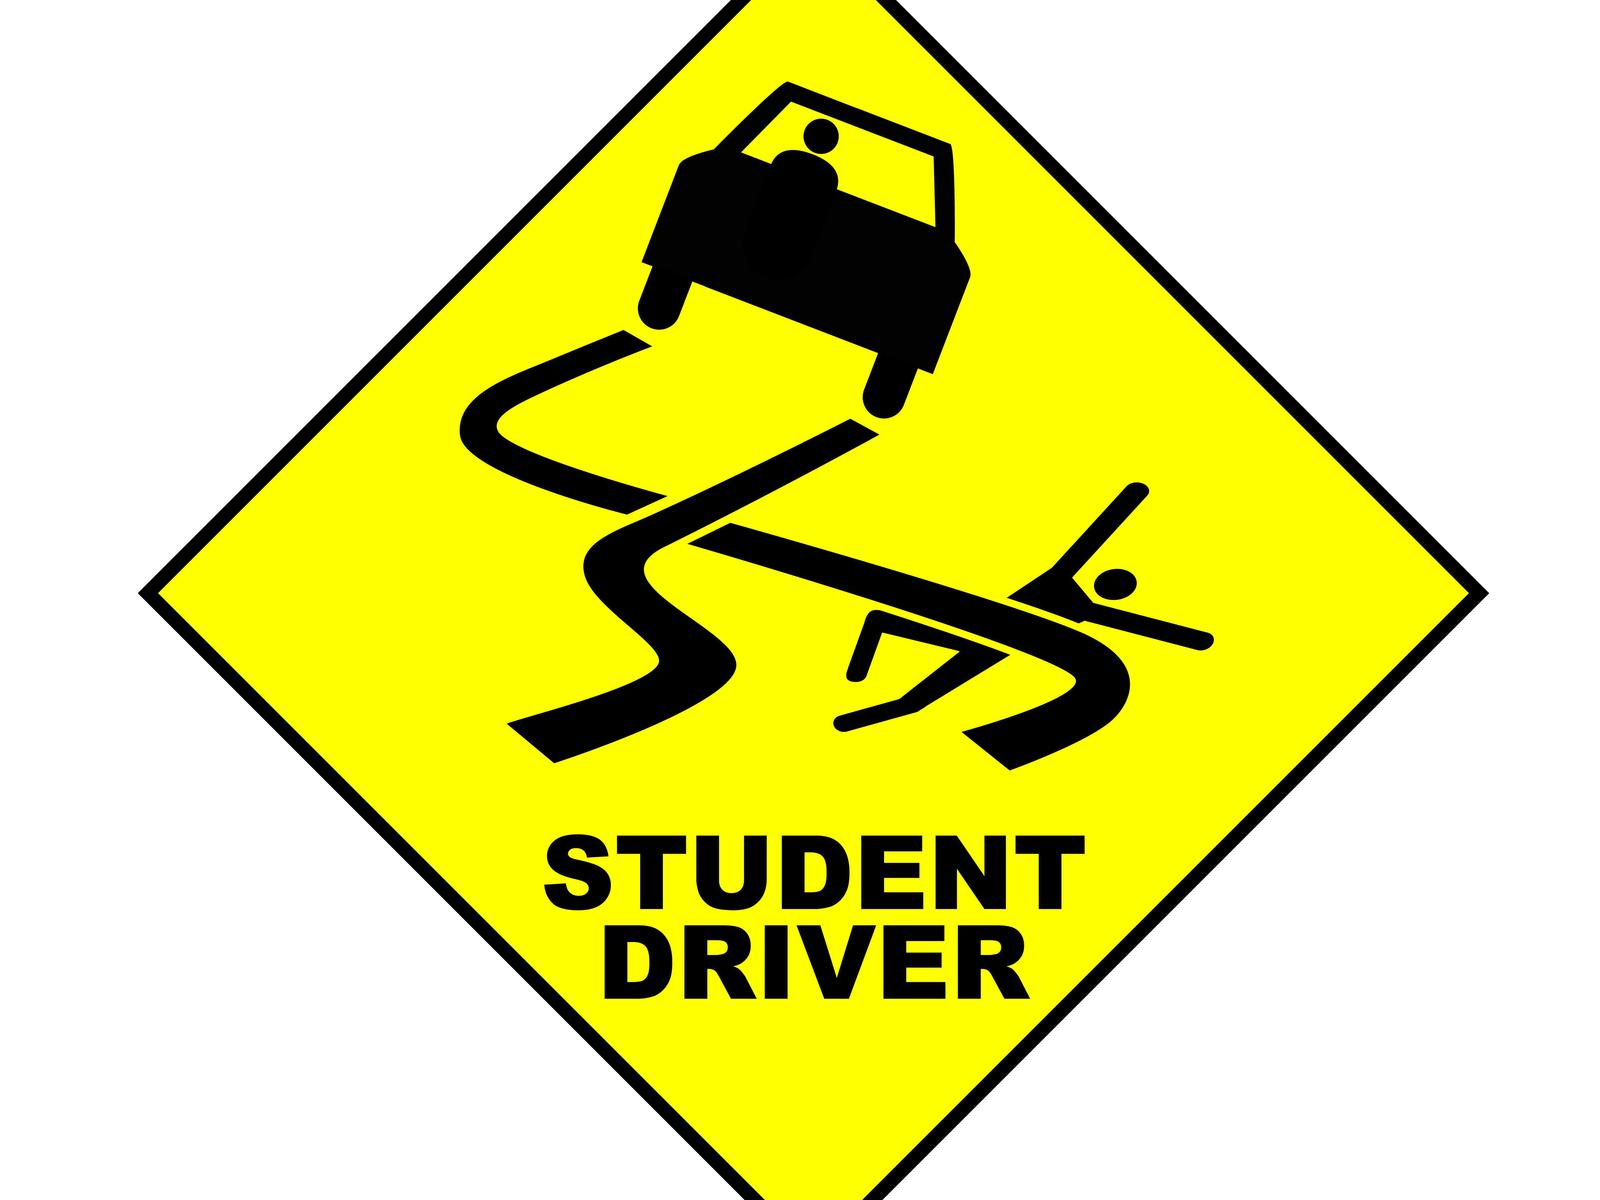 image regarding Student Driver Sign Printable identify Scholar Driver Street Indication Wallpaper and History Impression